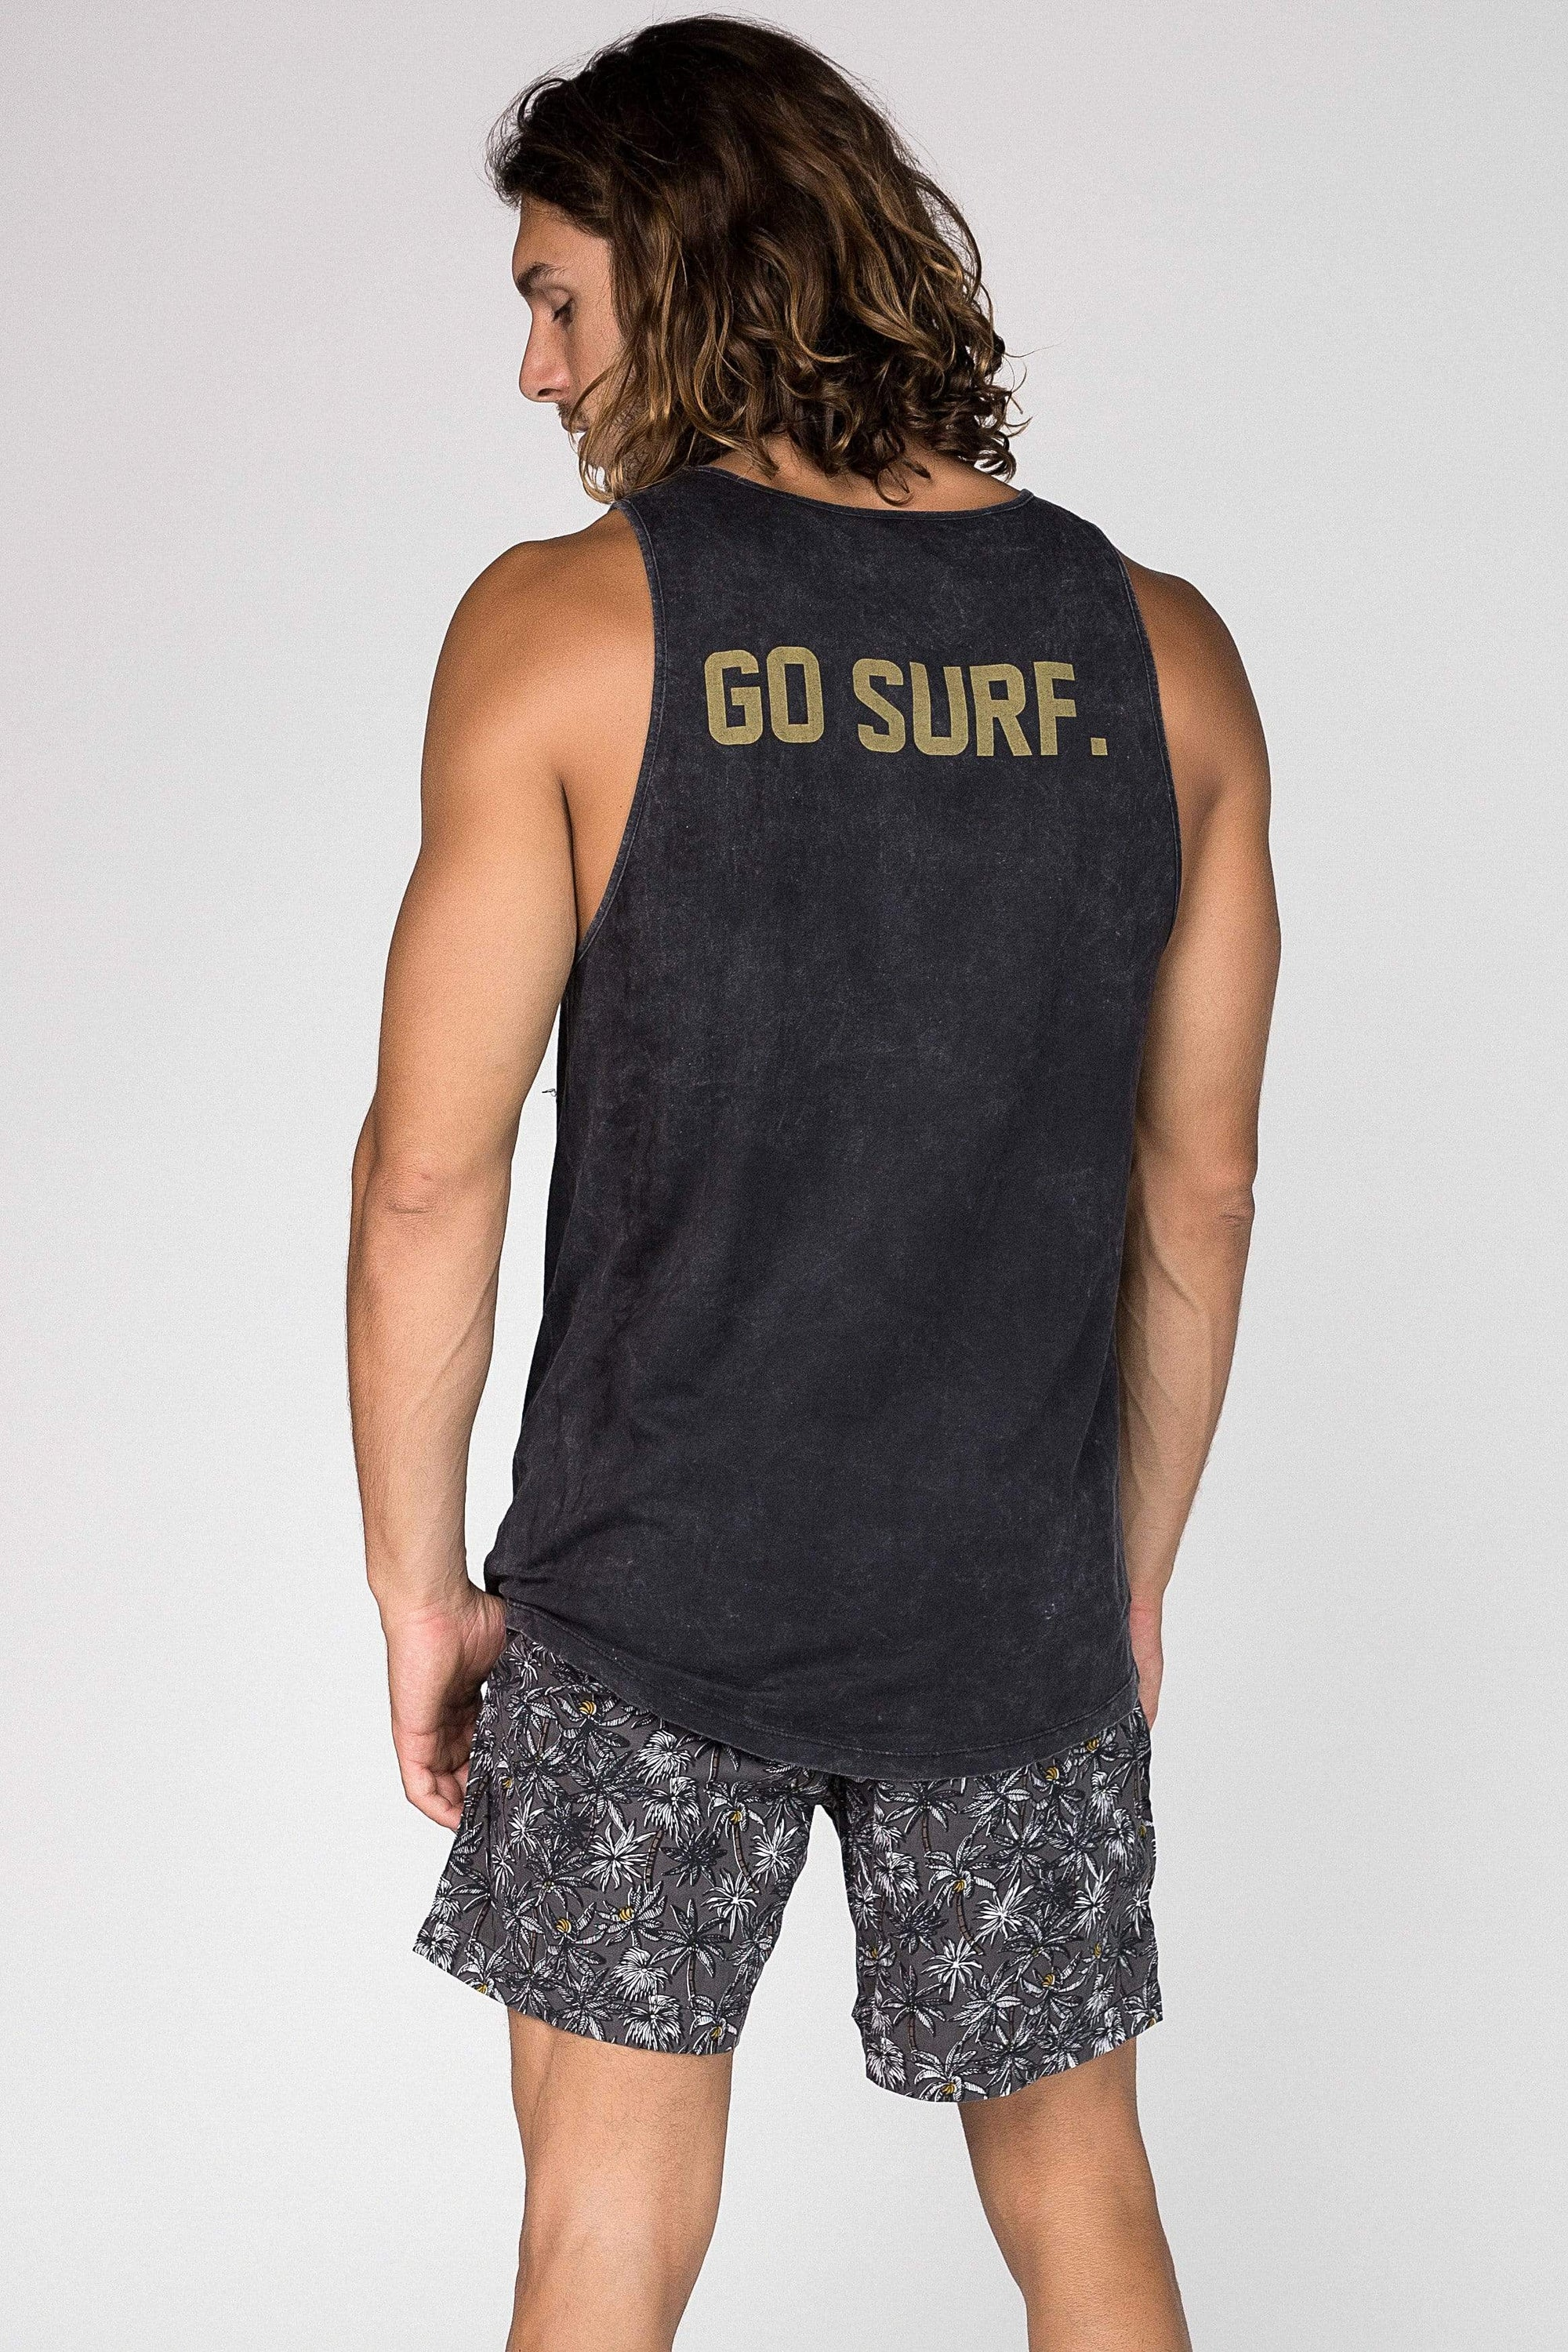 Sing Go Surf - Mens Muscle Tank - LOST IN PARADISE